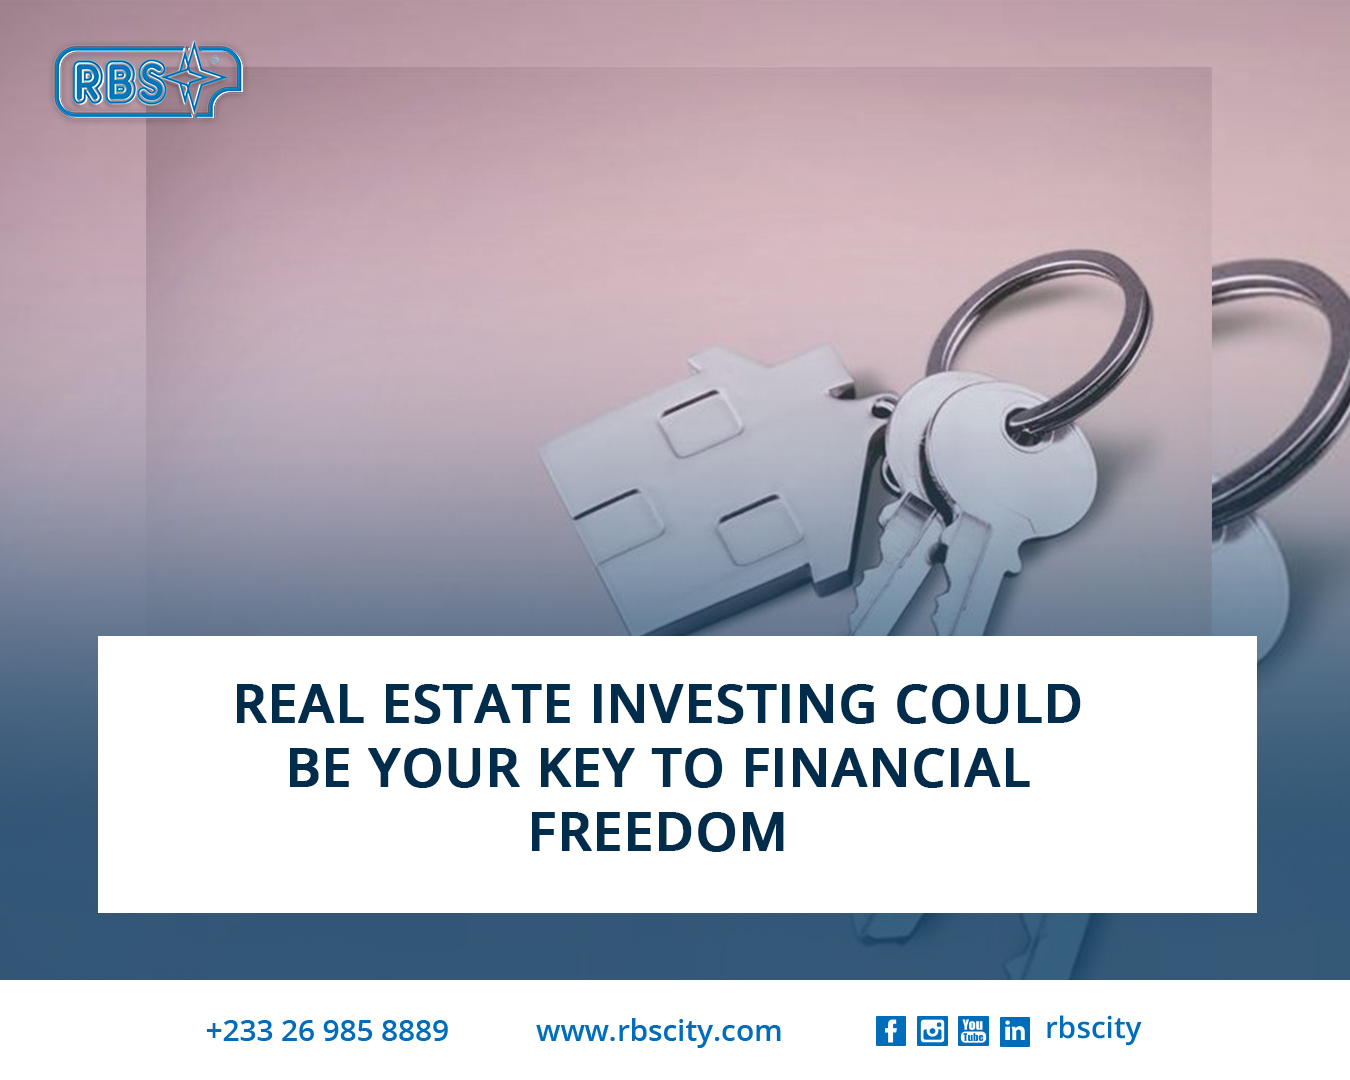 Real Estate Investing Could Be Your Key to Financial Freedom